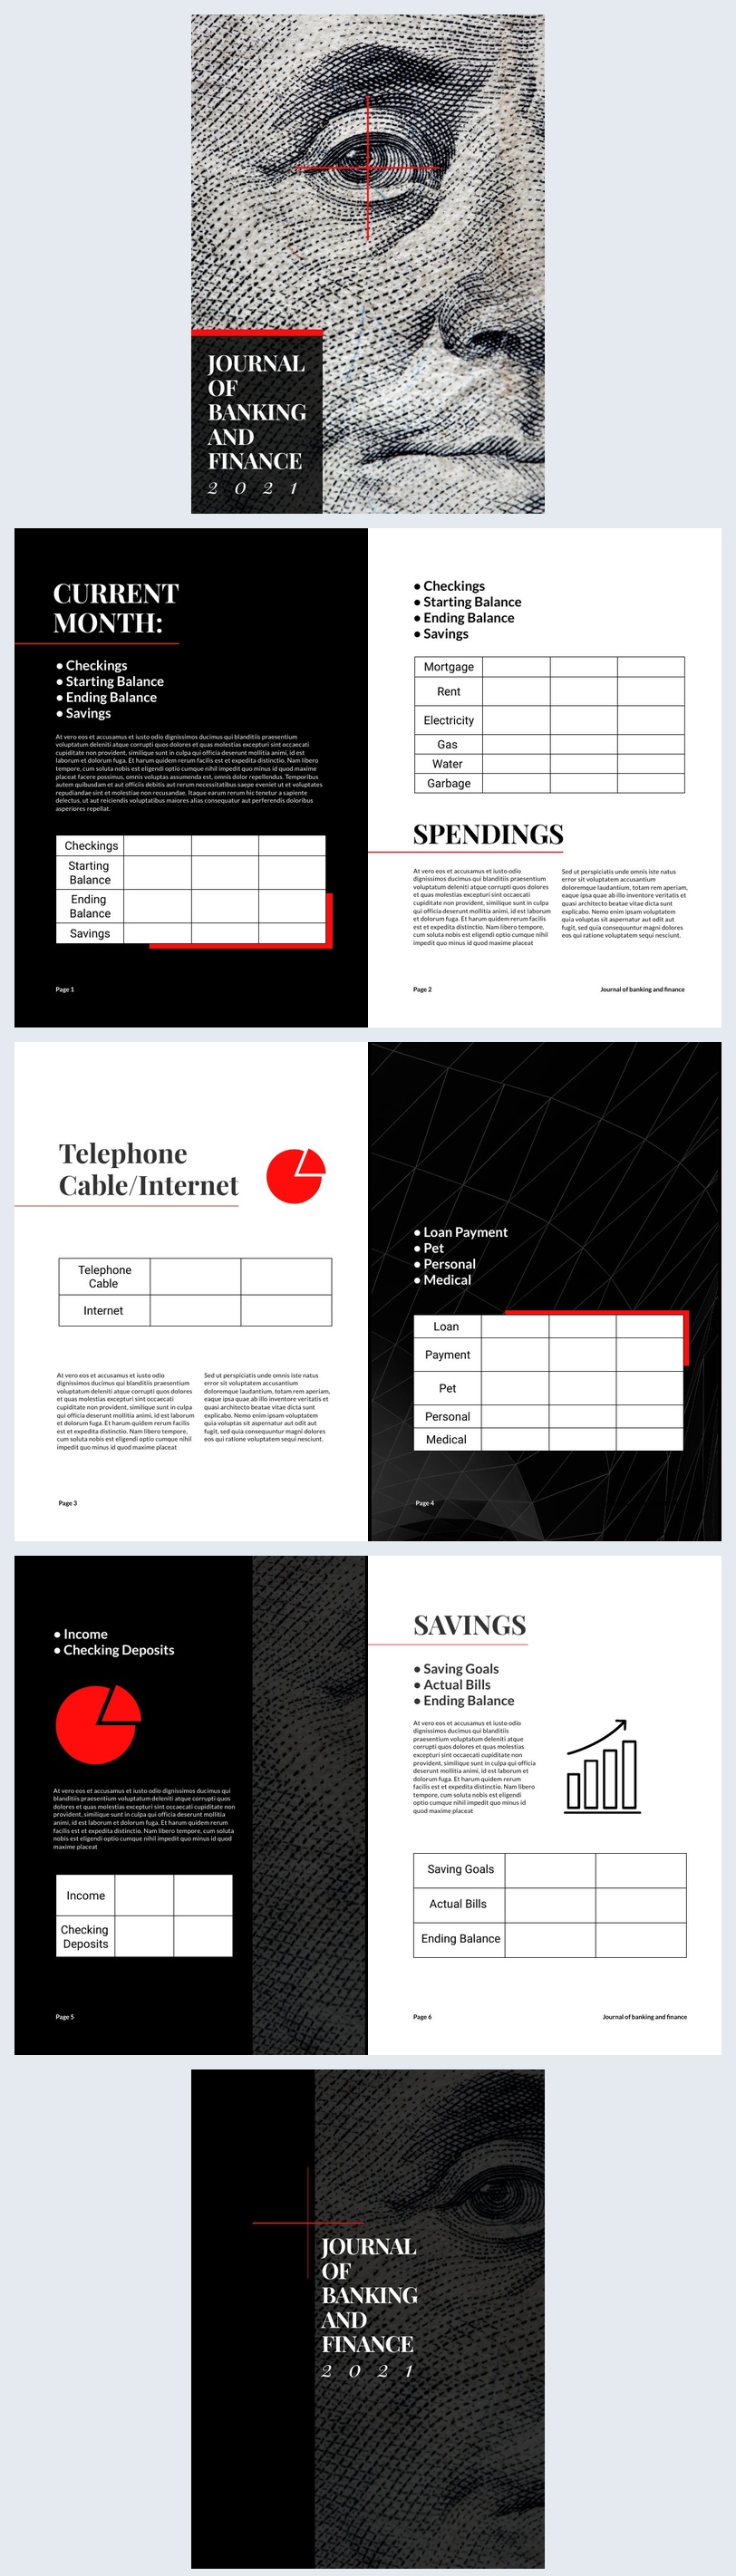 Journal of Banking & Finance Design Example